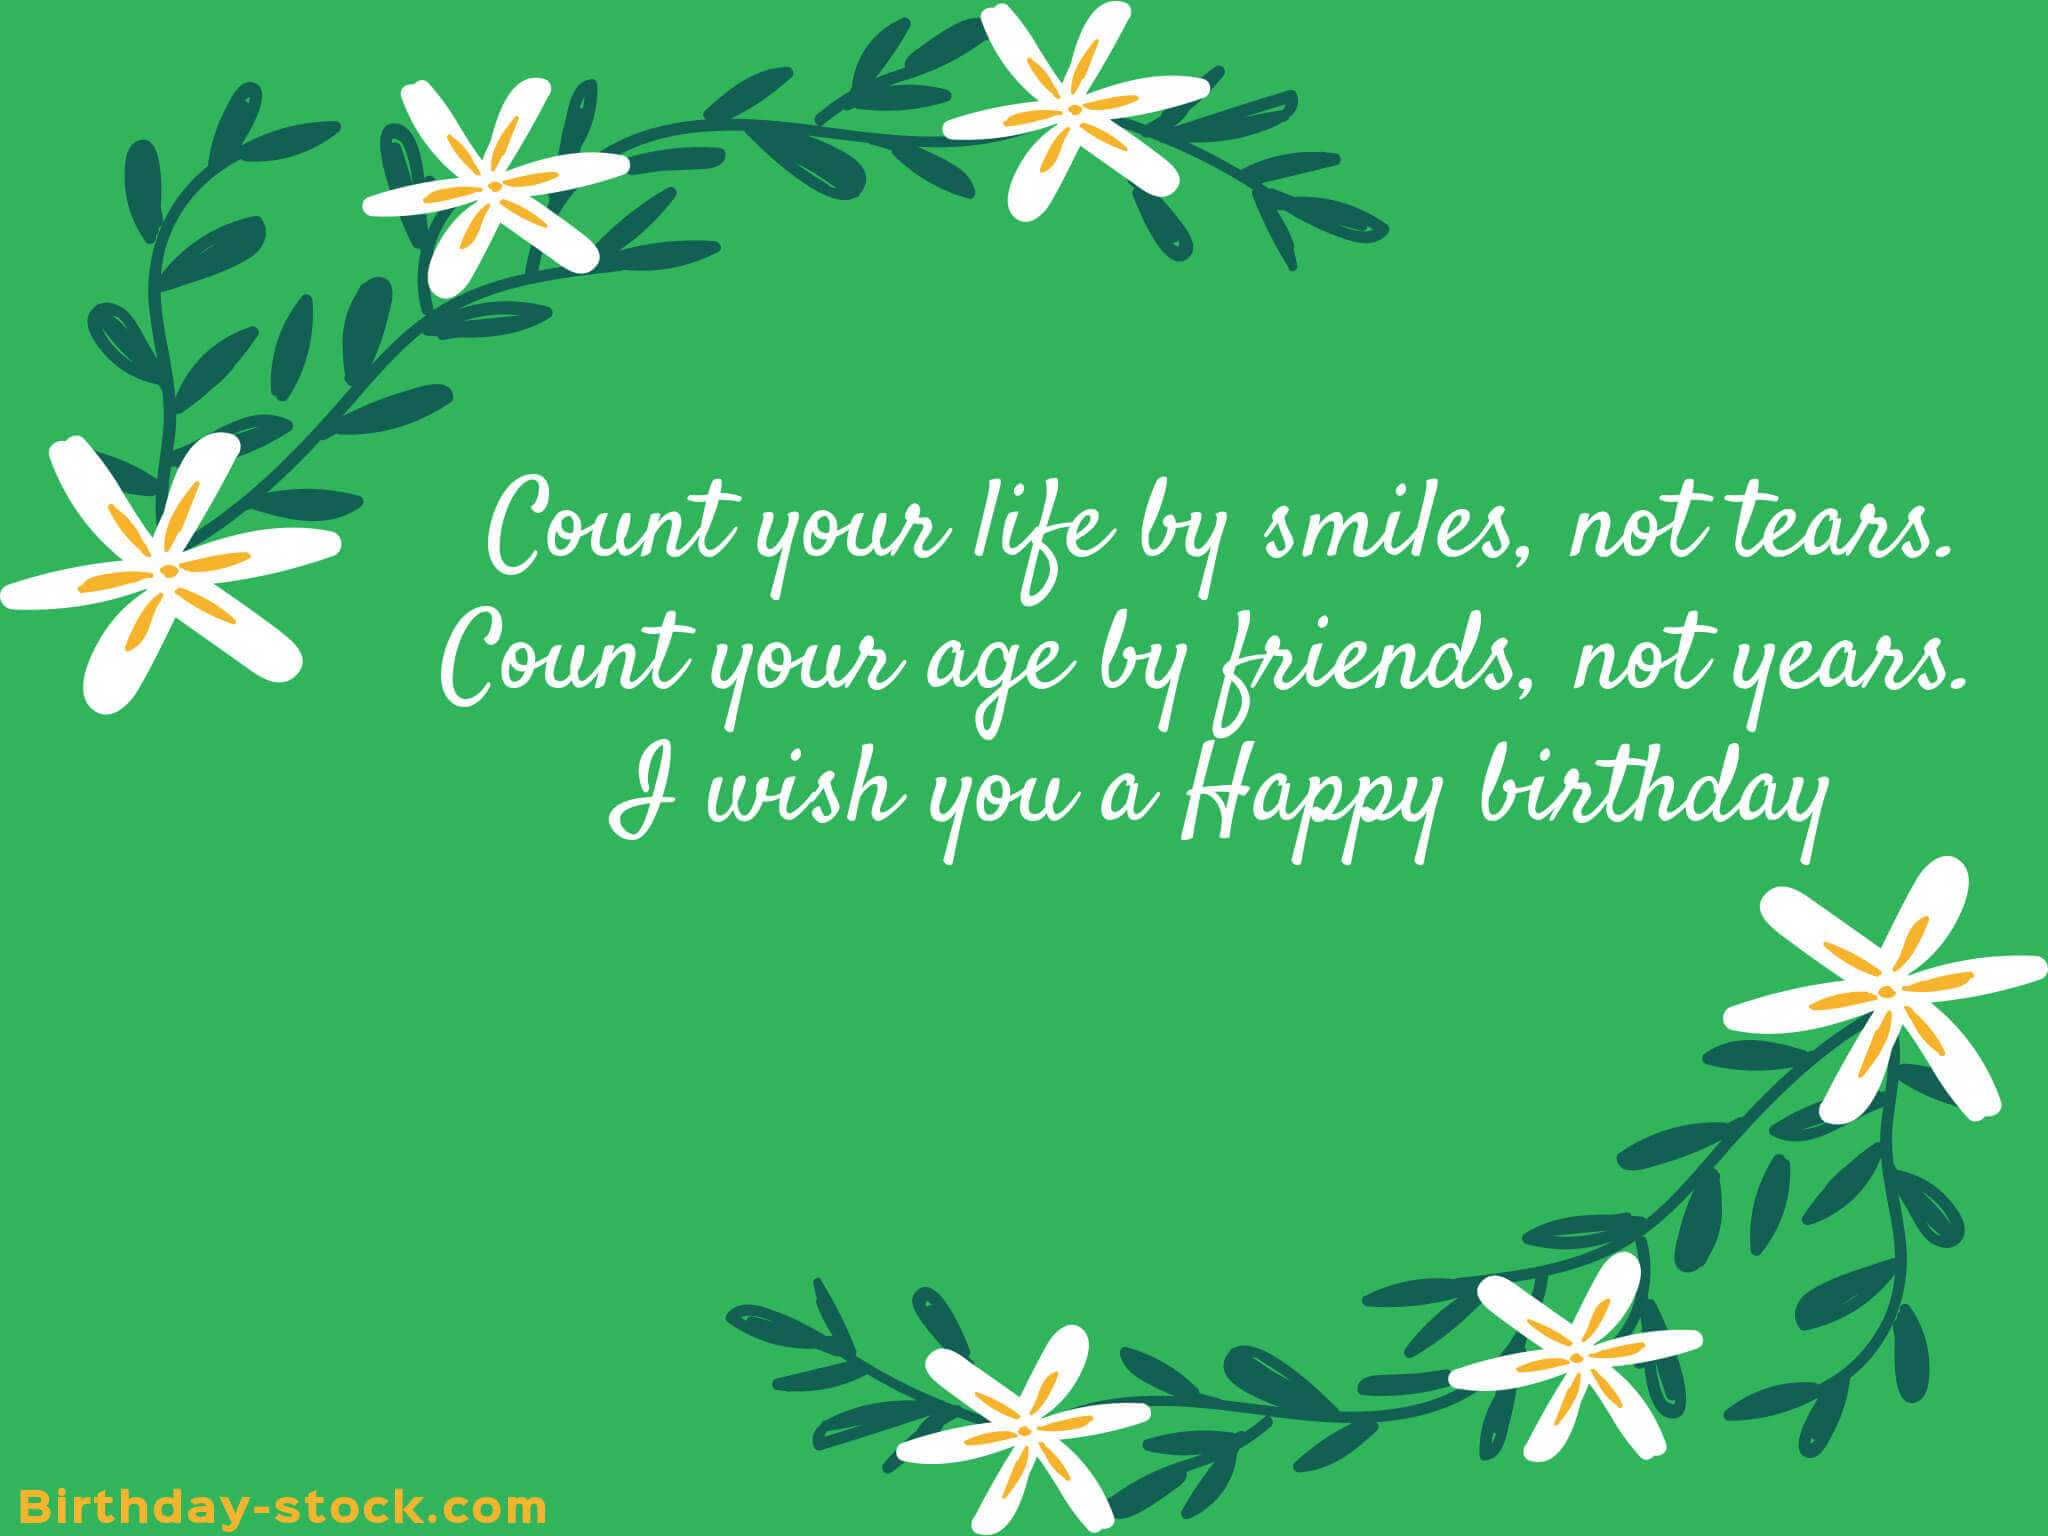 # Top 150+ Happy Birthday Wishes Images Sms 2020 Quotes for Friends